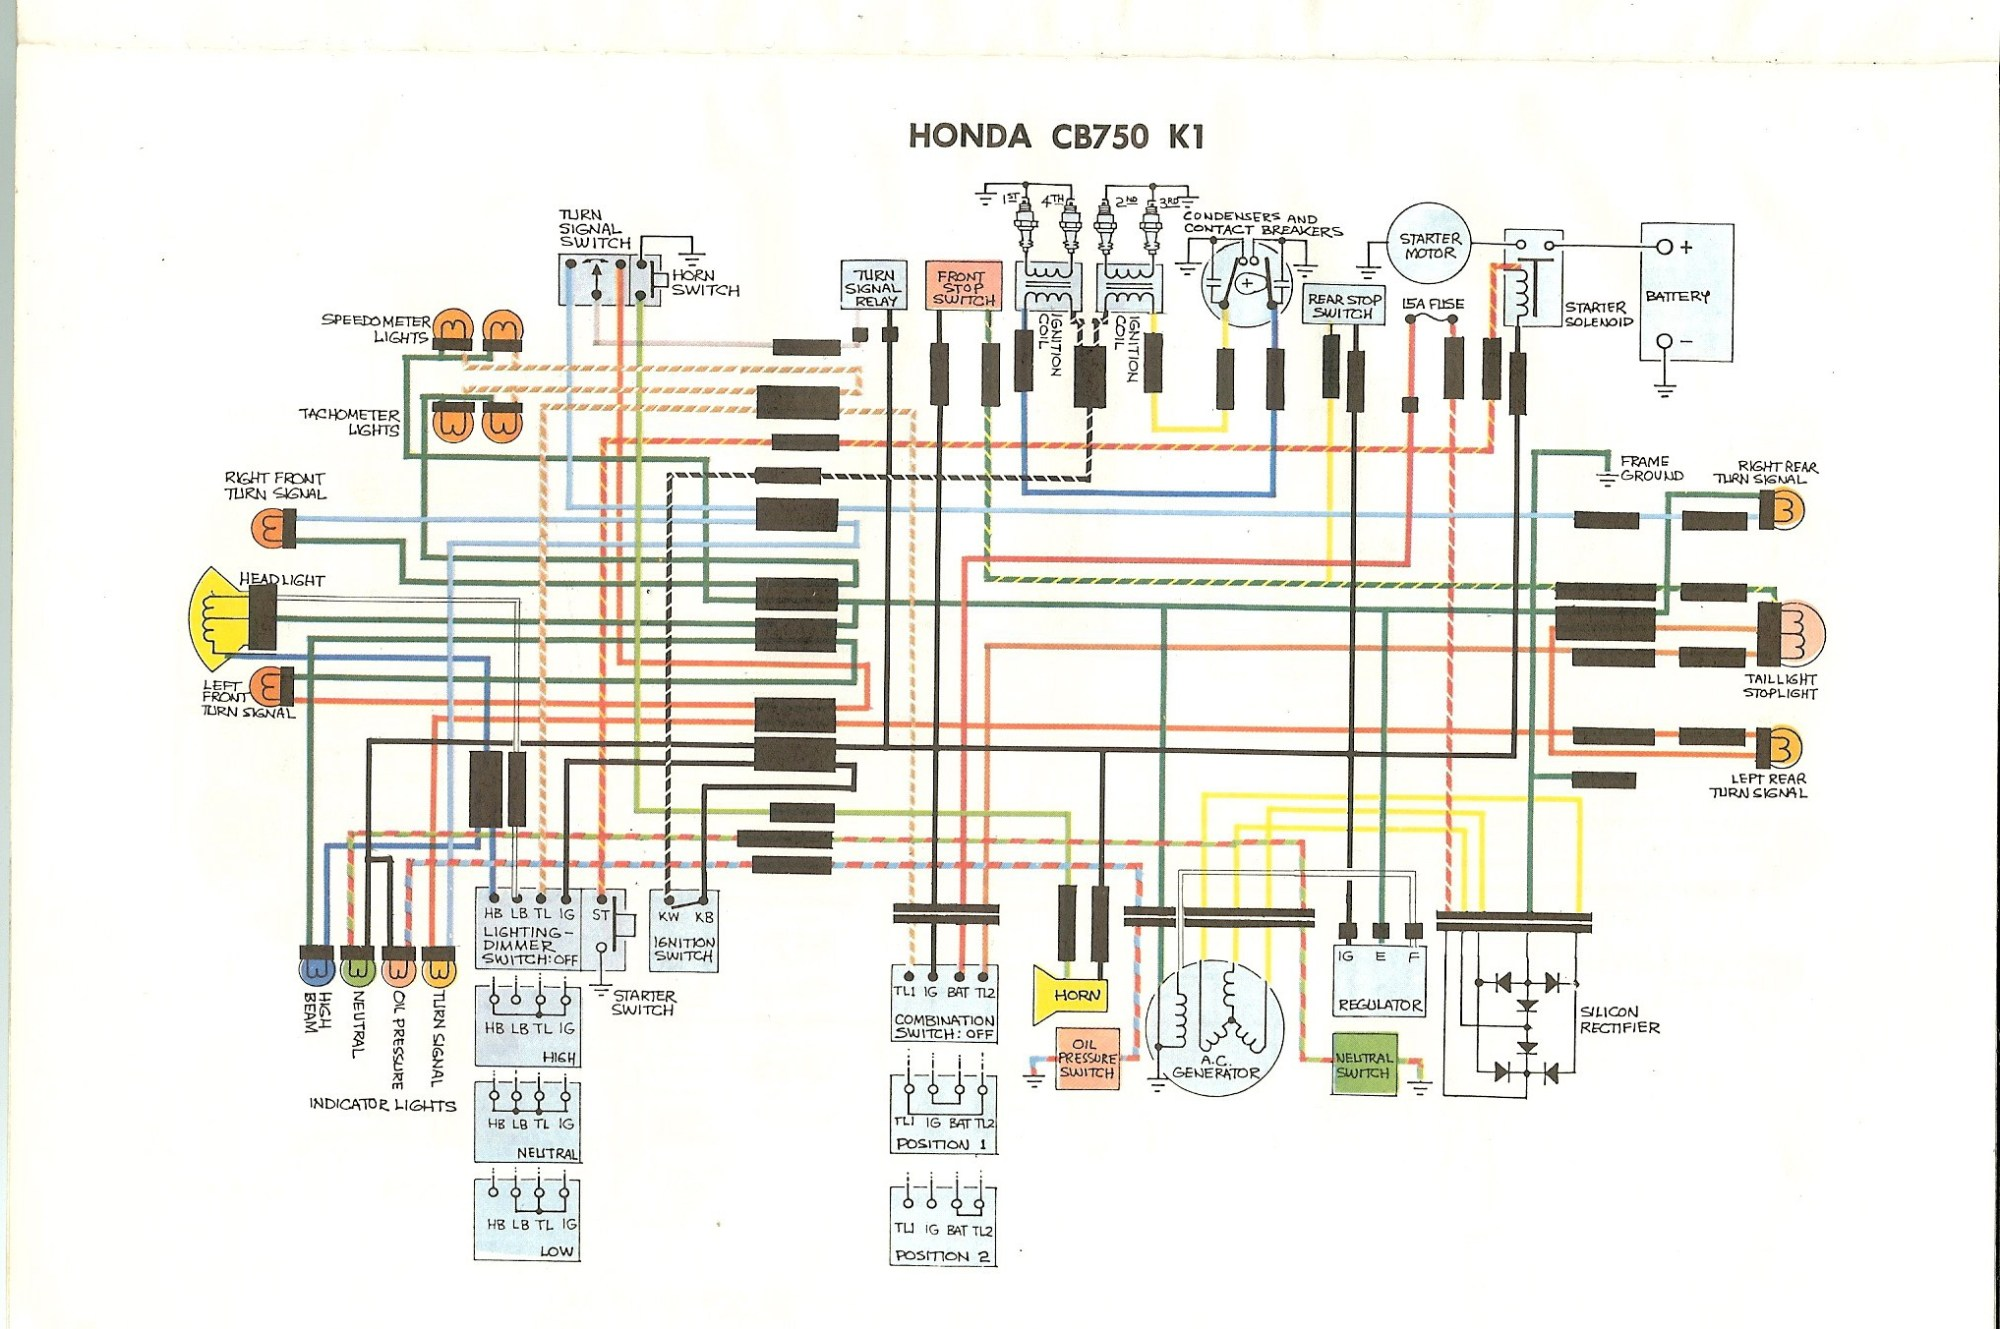 hight resolution of honda cb750 wiring schematic example electrical wiring diagram u2022 rh huntervalleyhotels co honda outboard wiring diagram